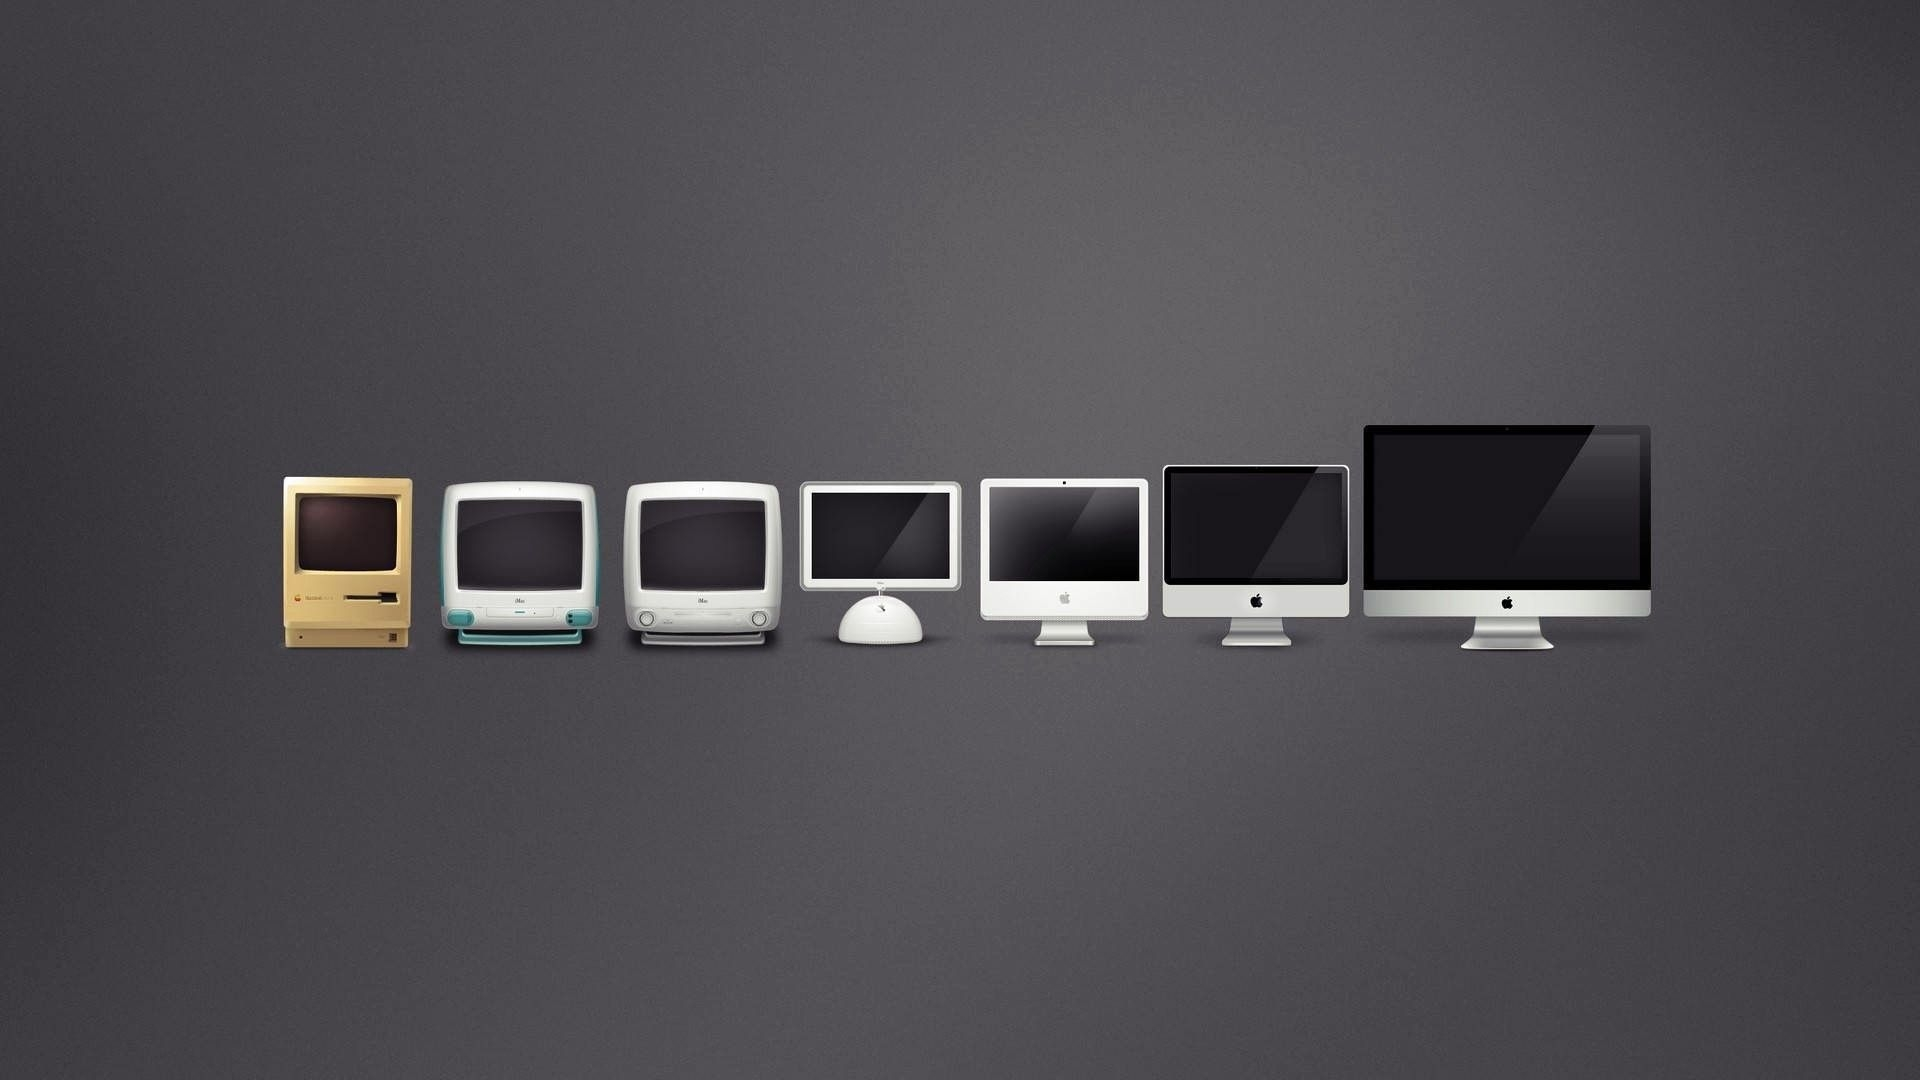 Wallpaper For Macintosh